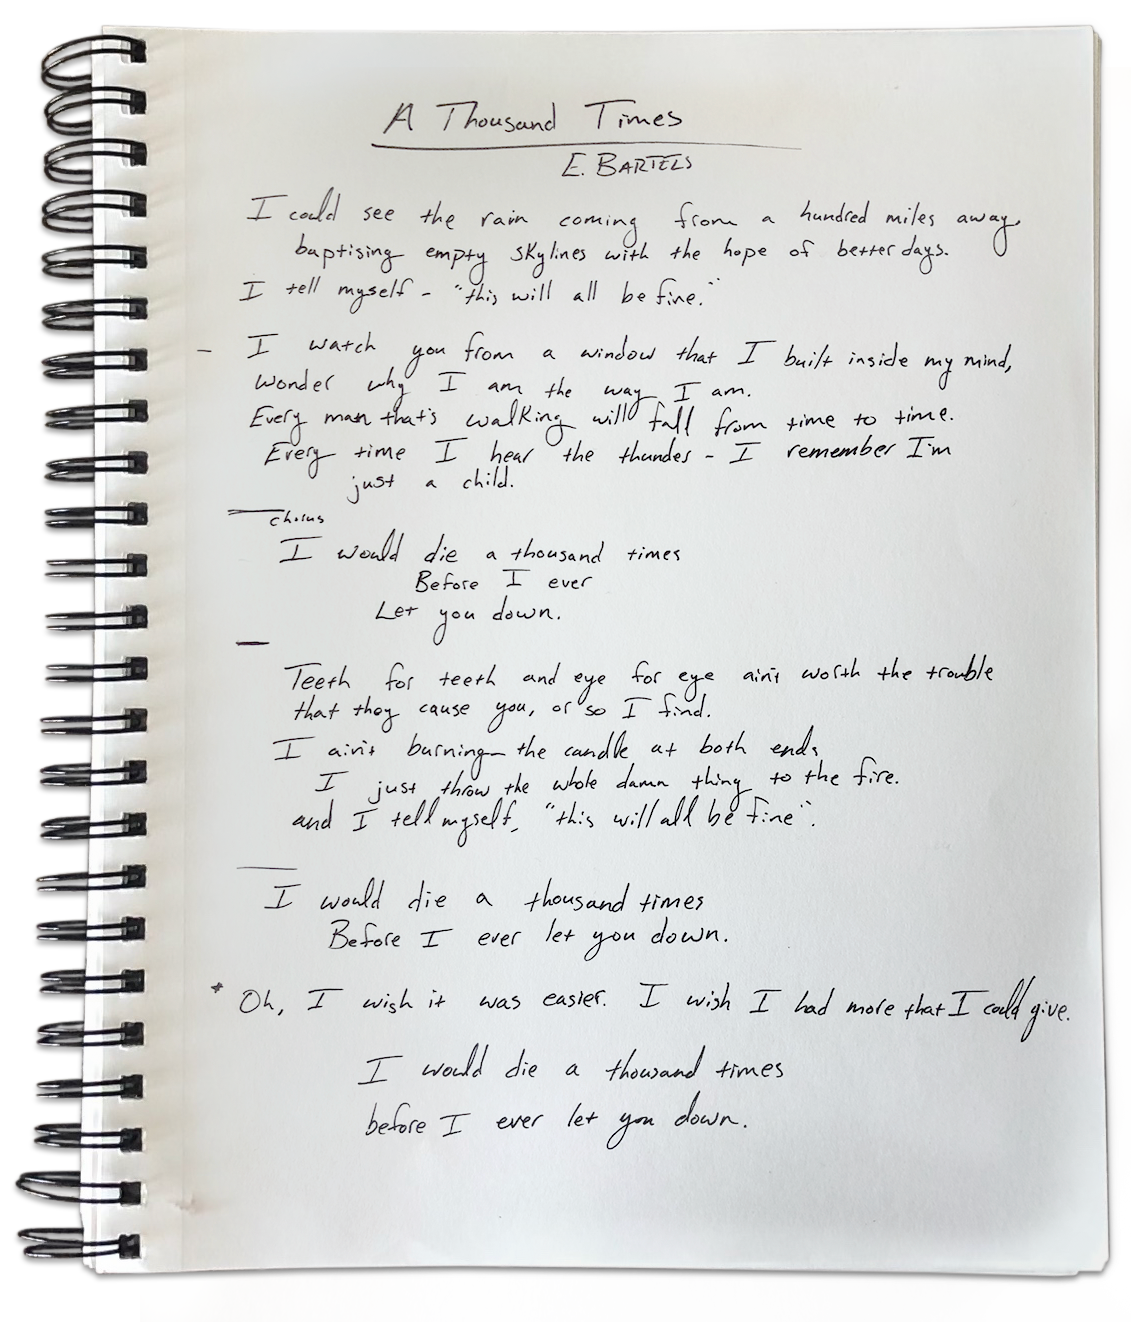 AThousandTimes-LyricSheet-Notebook.png